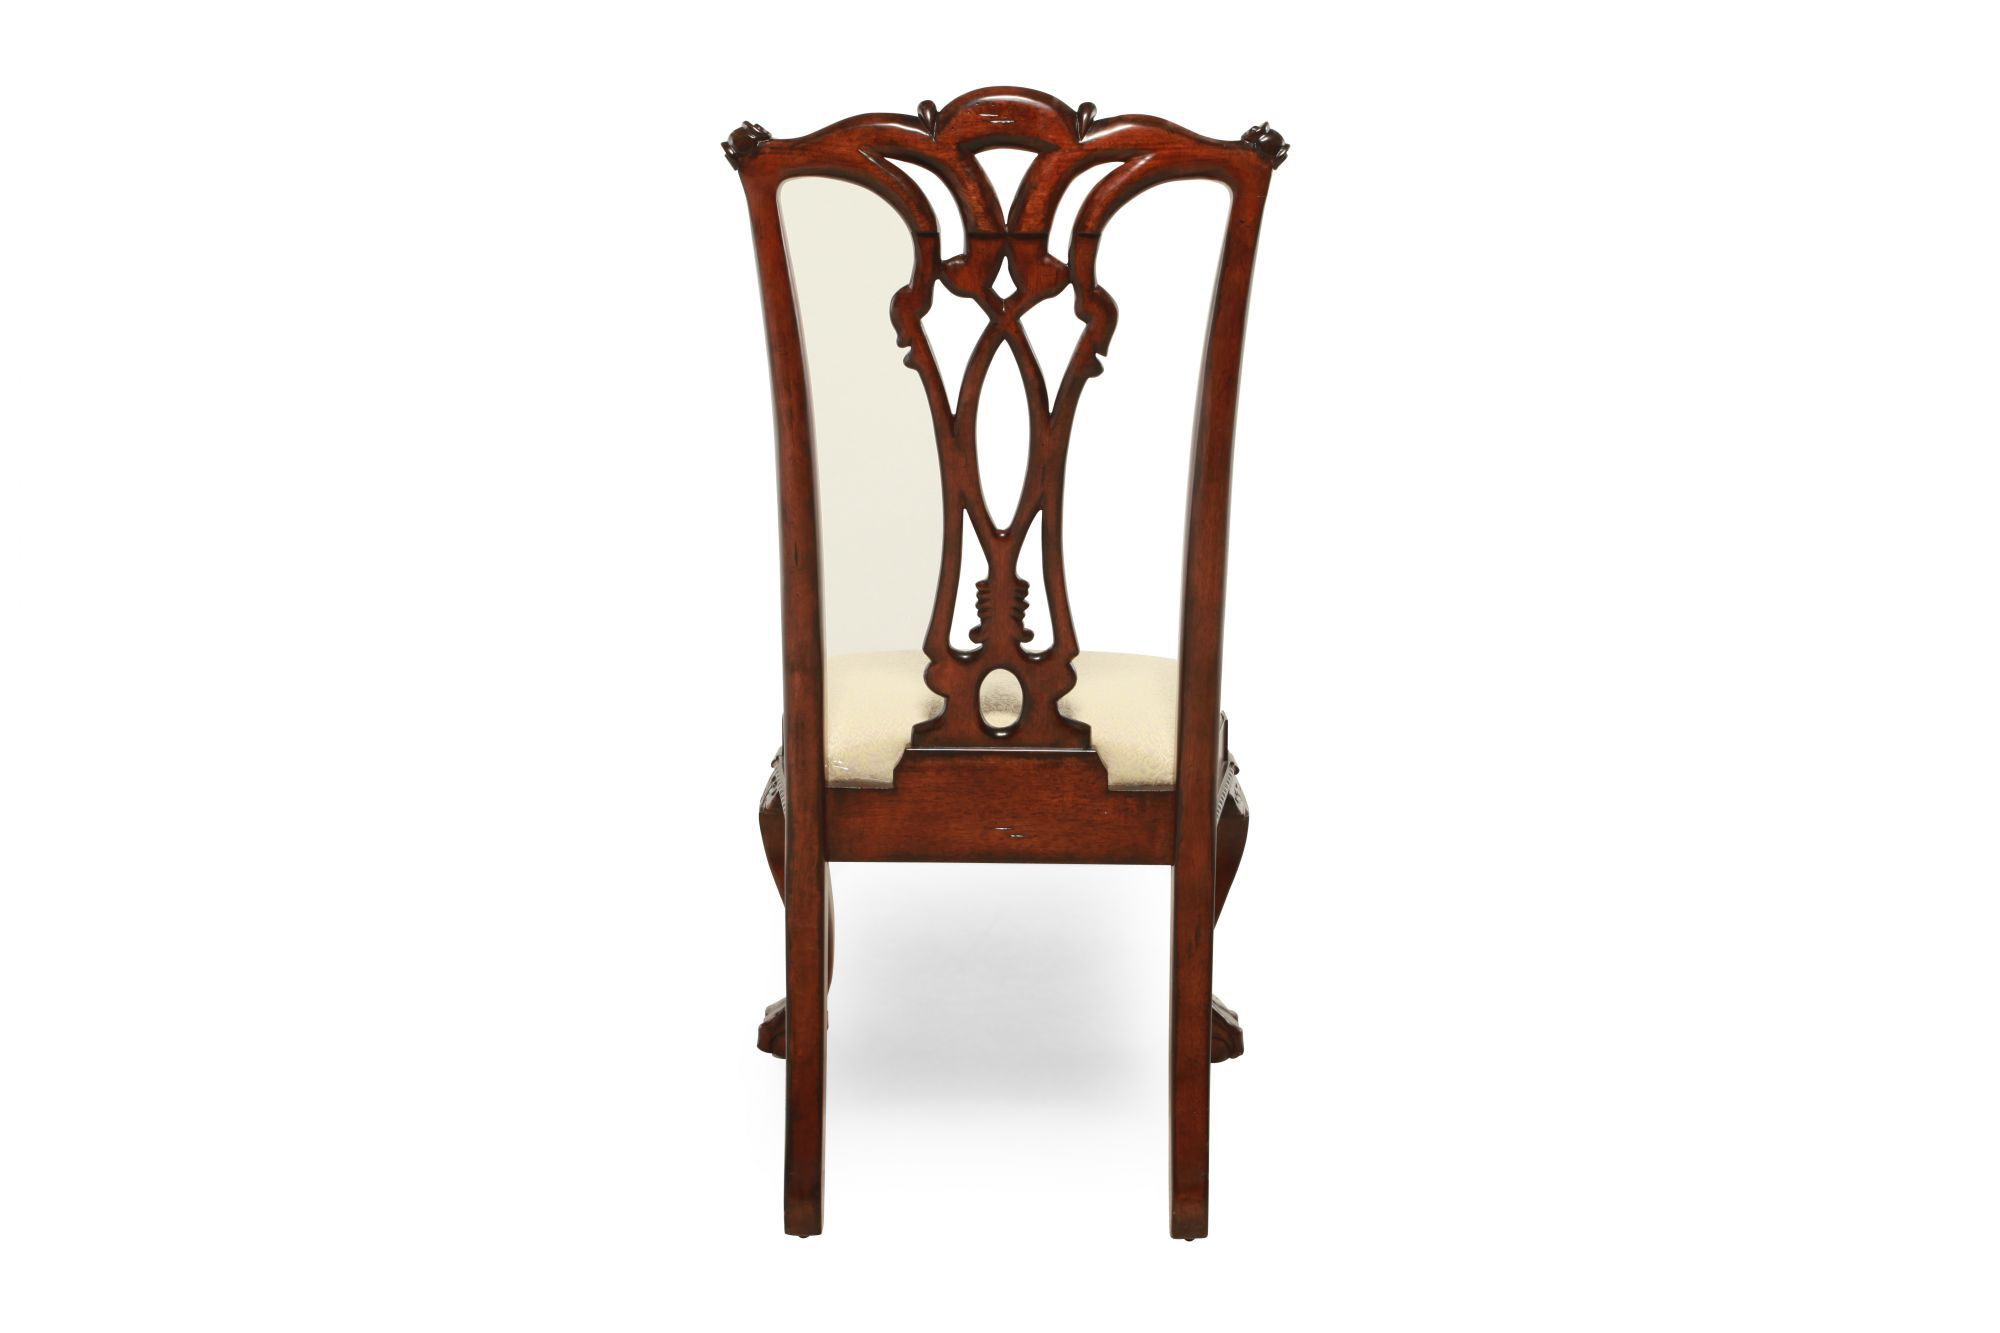 Charming Engraved Traditional Desk Chair In Cherryu0026nbsp;